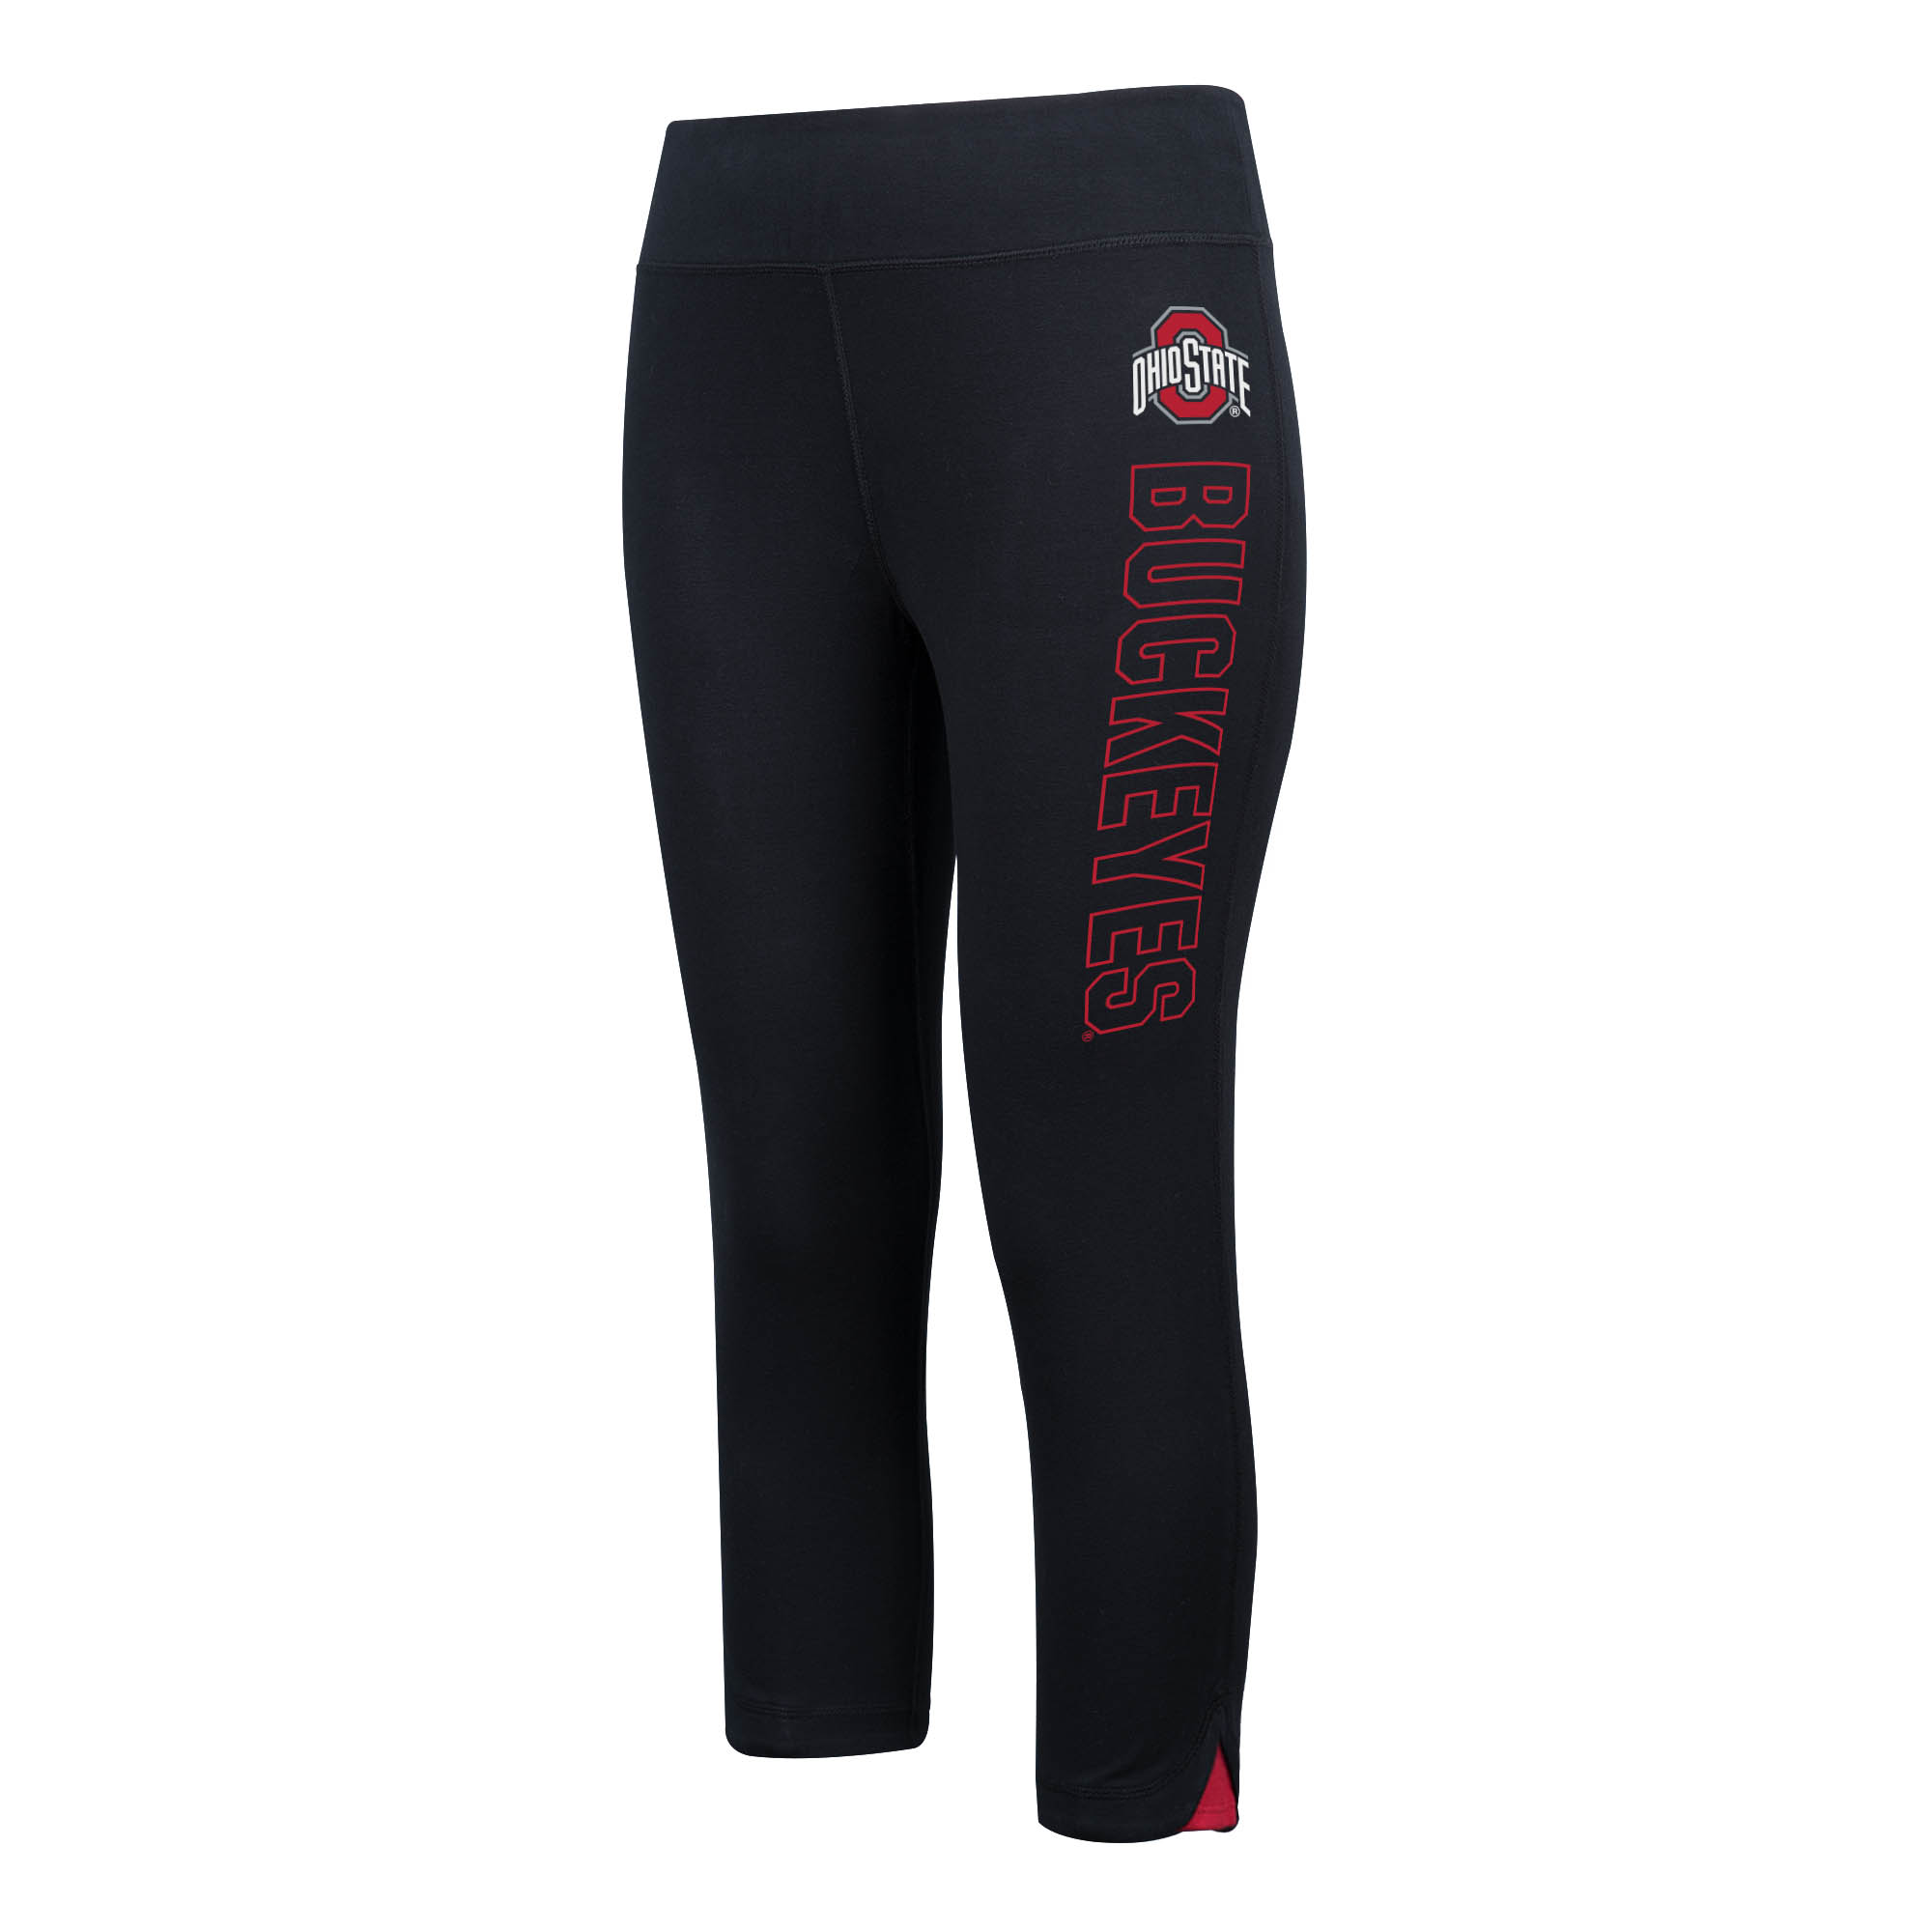 NEW OHIO STATE SCRUB PANT BLACK -3 XL